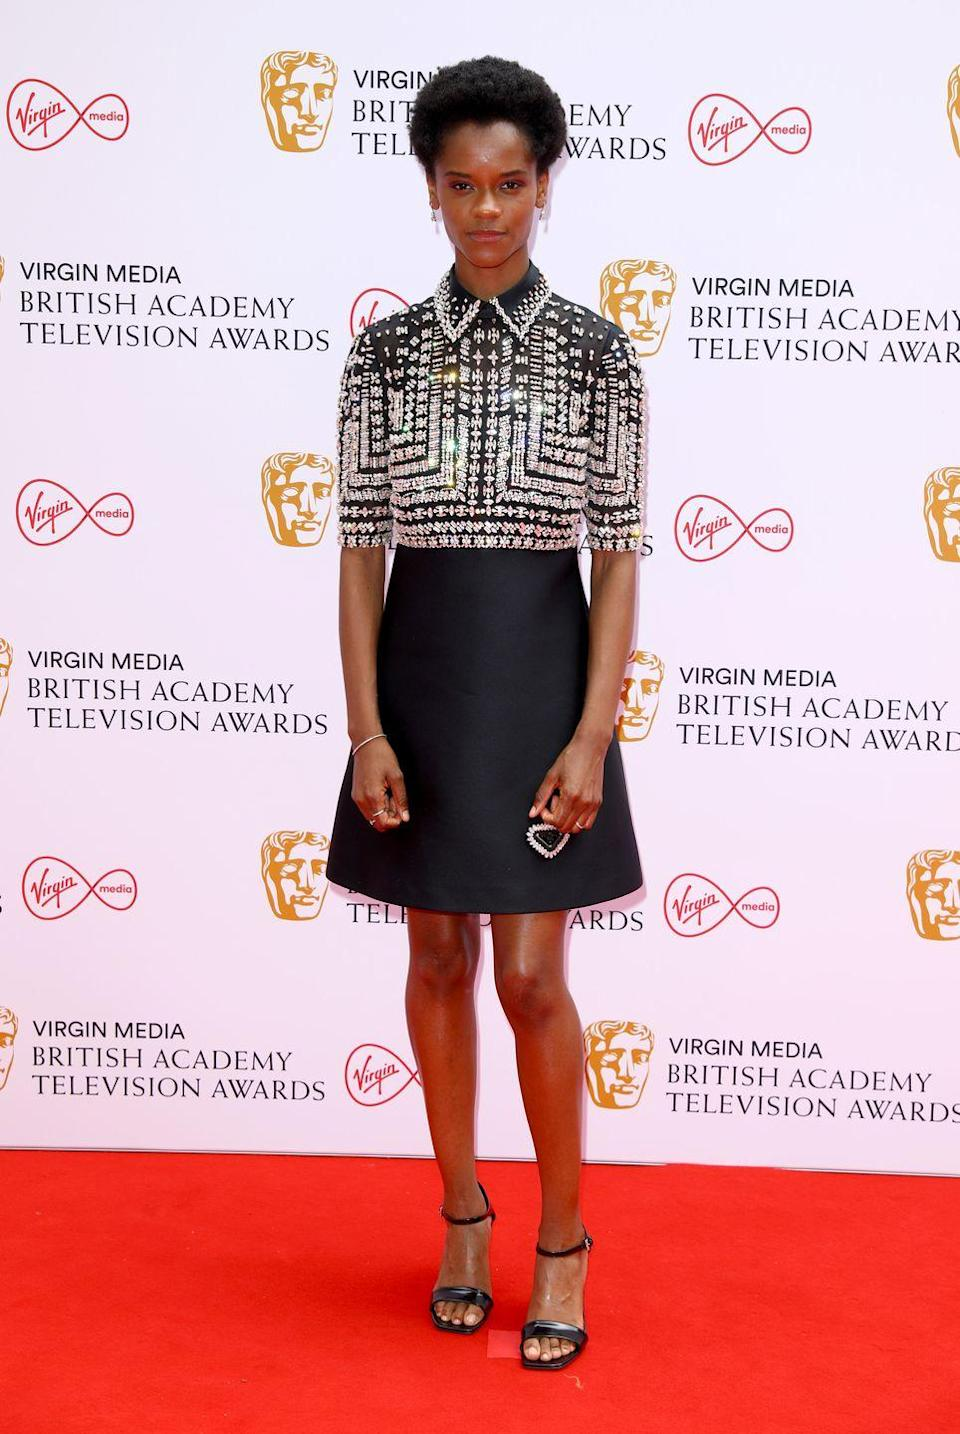 <p>Letitia Wright brought some dazzle to the red carpet, wearing a bejewelled mini dress by Prada, which she teamed with strappy sandals.</p>